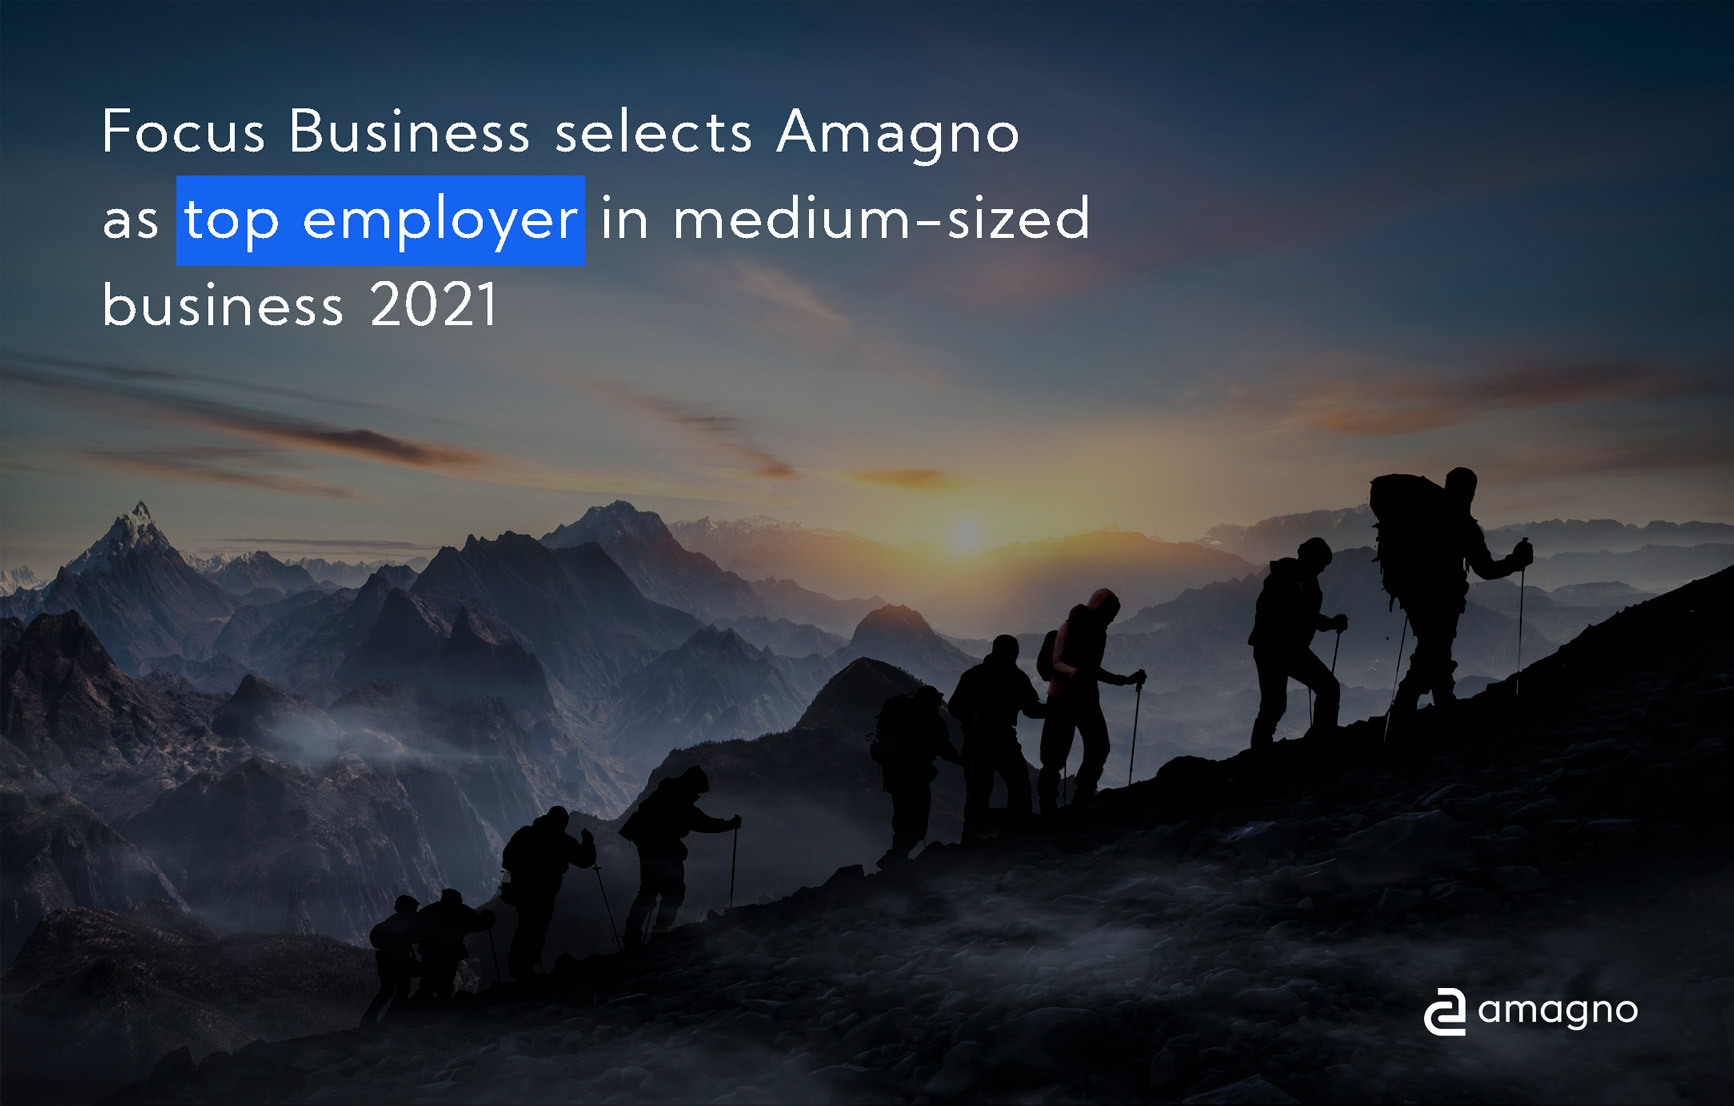 Focus Business: Amagno 2021 again recognized as a top employer